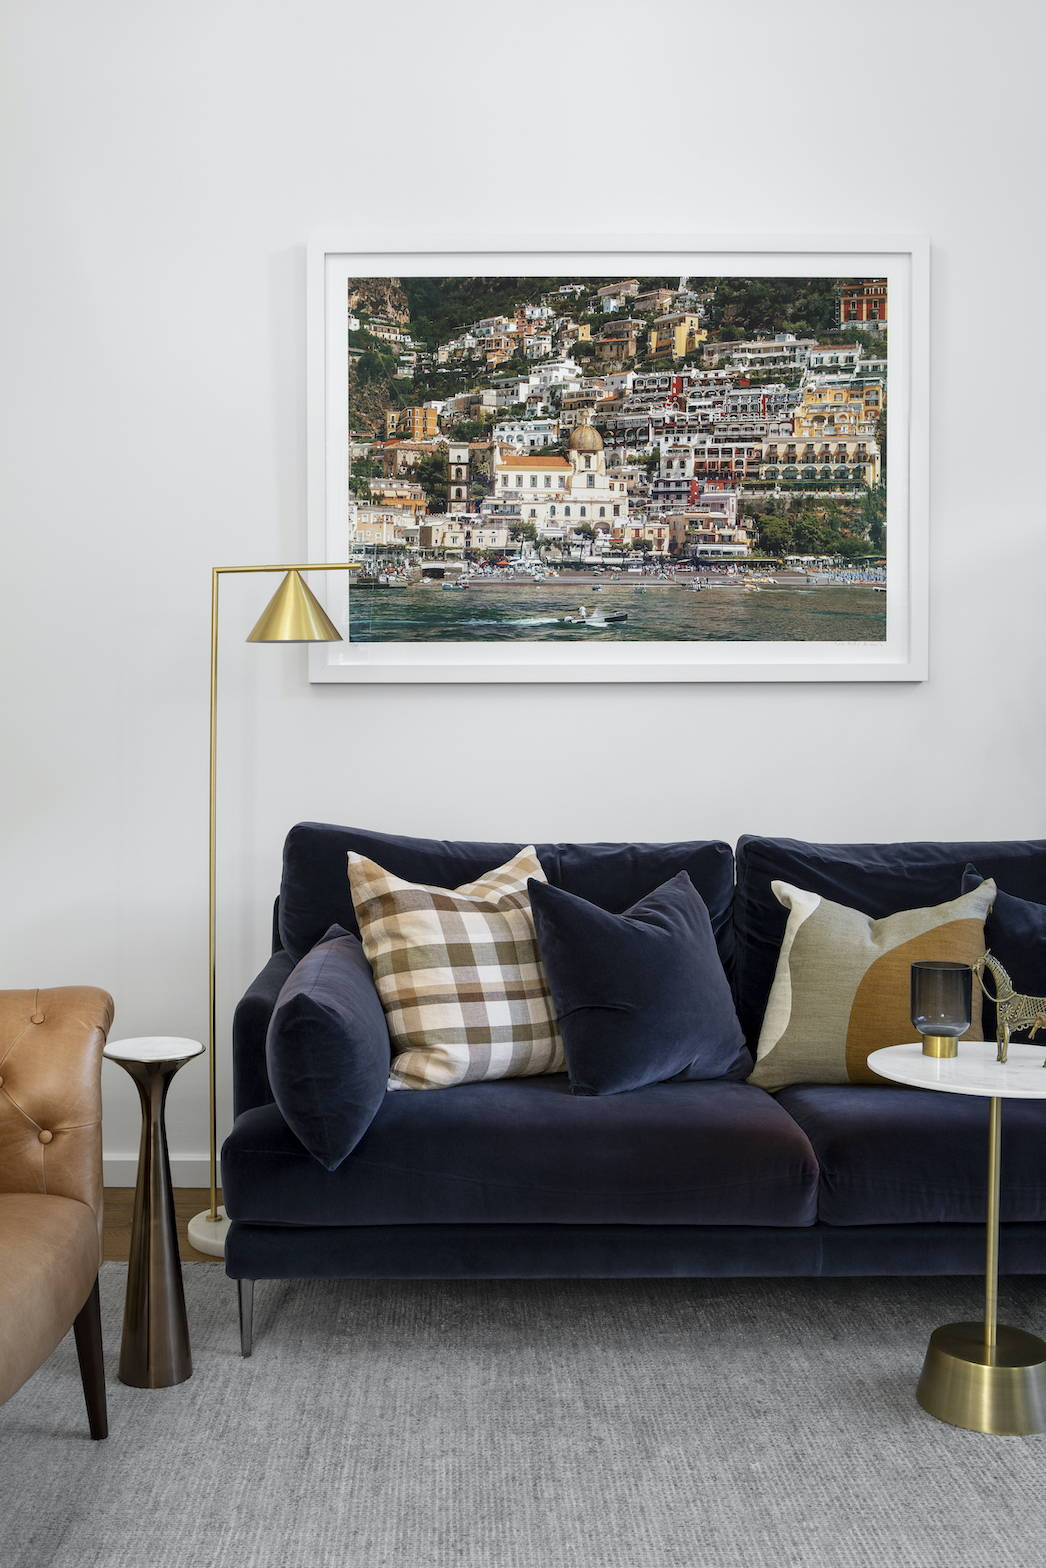 Photography of a Positano landscape in a living room